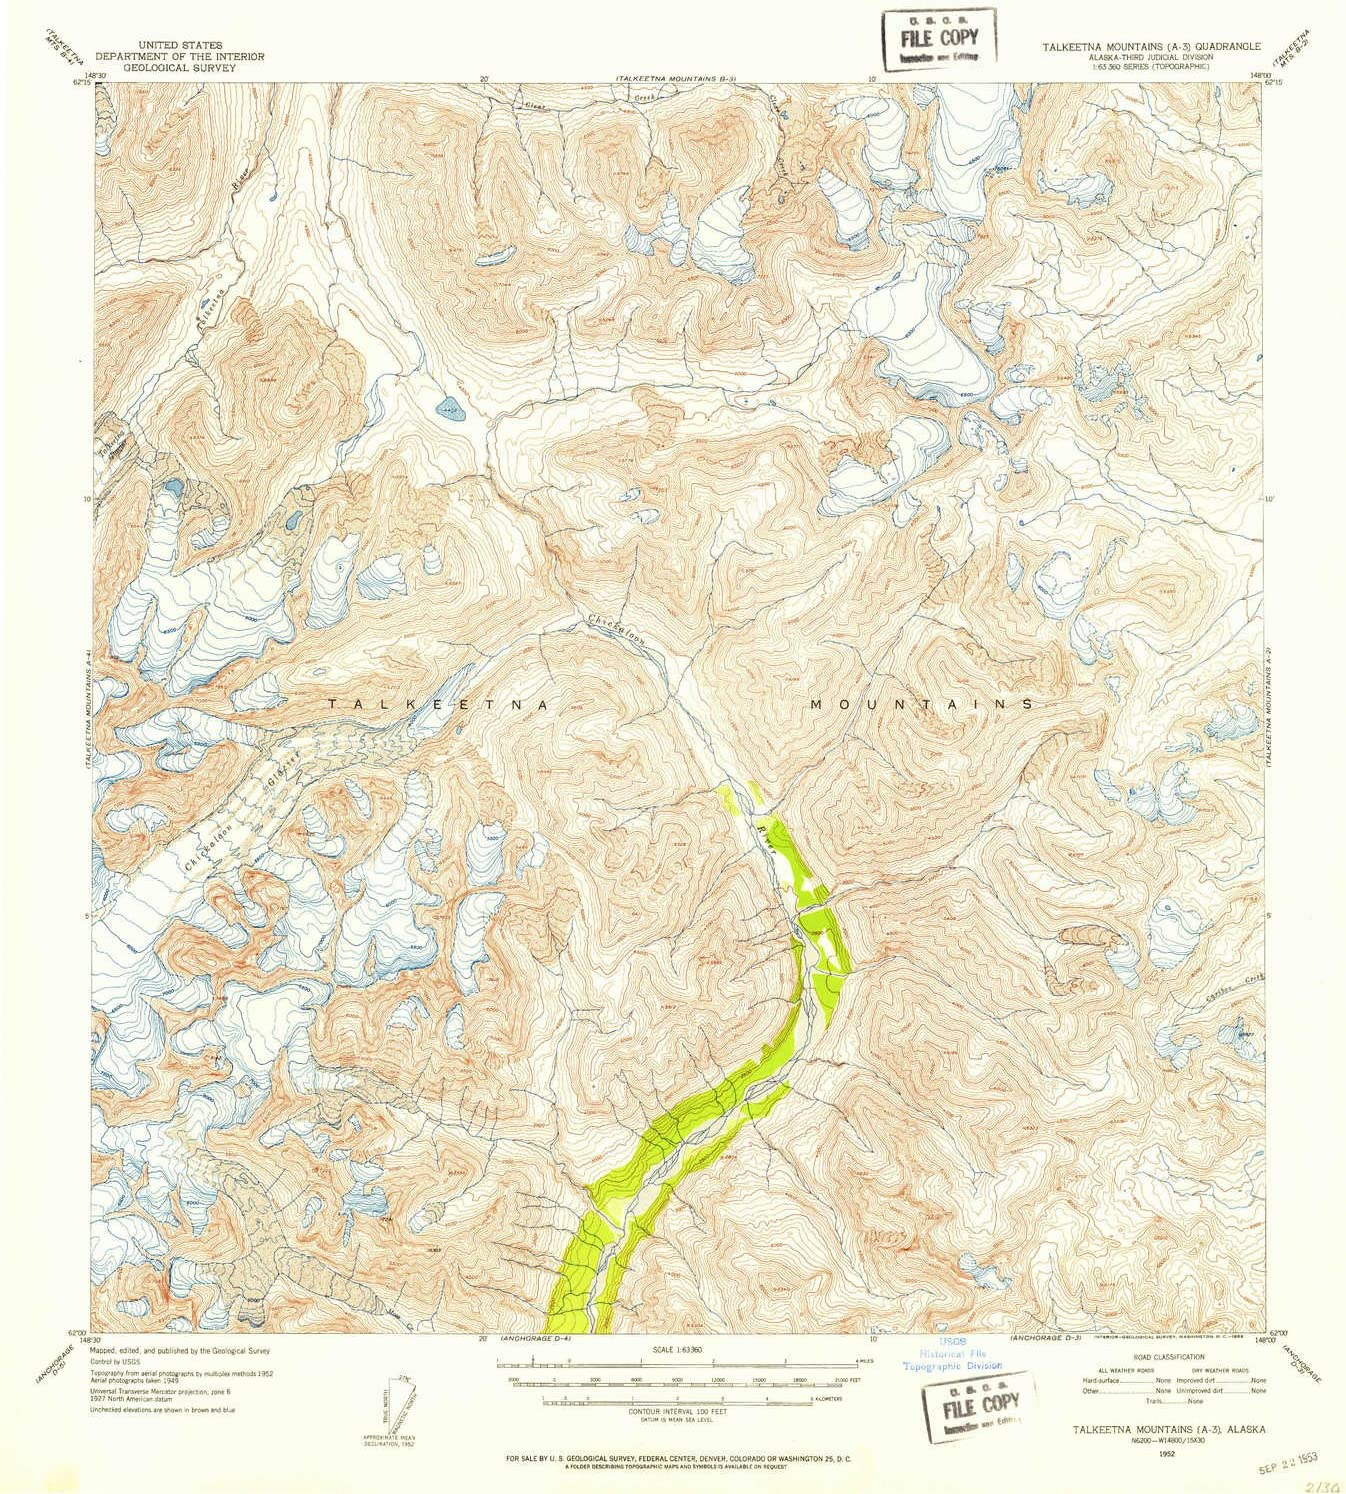 Free Shipping Cheap Bargain Gift YellowMaps Talkeetna Mountains A 3 AK map 1:63360 1 Scale We OFFer at cheap prices topo